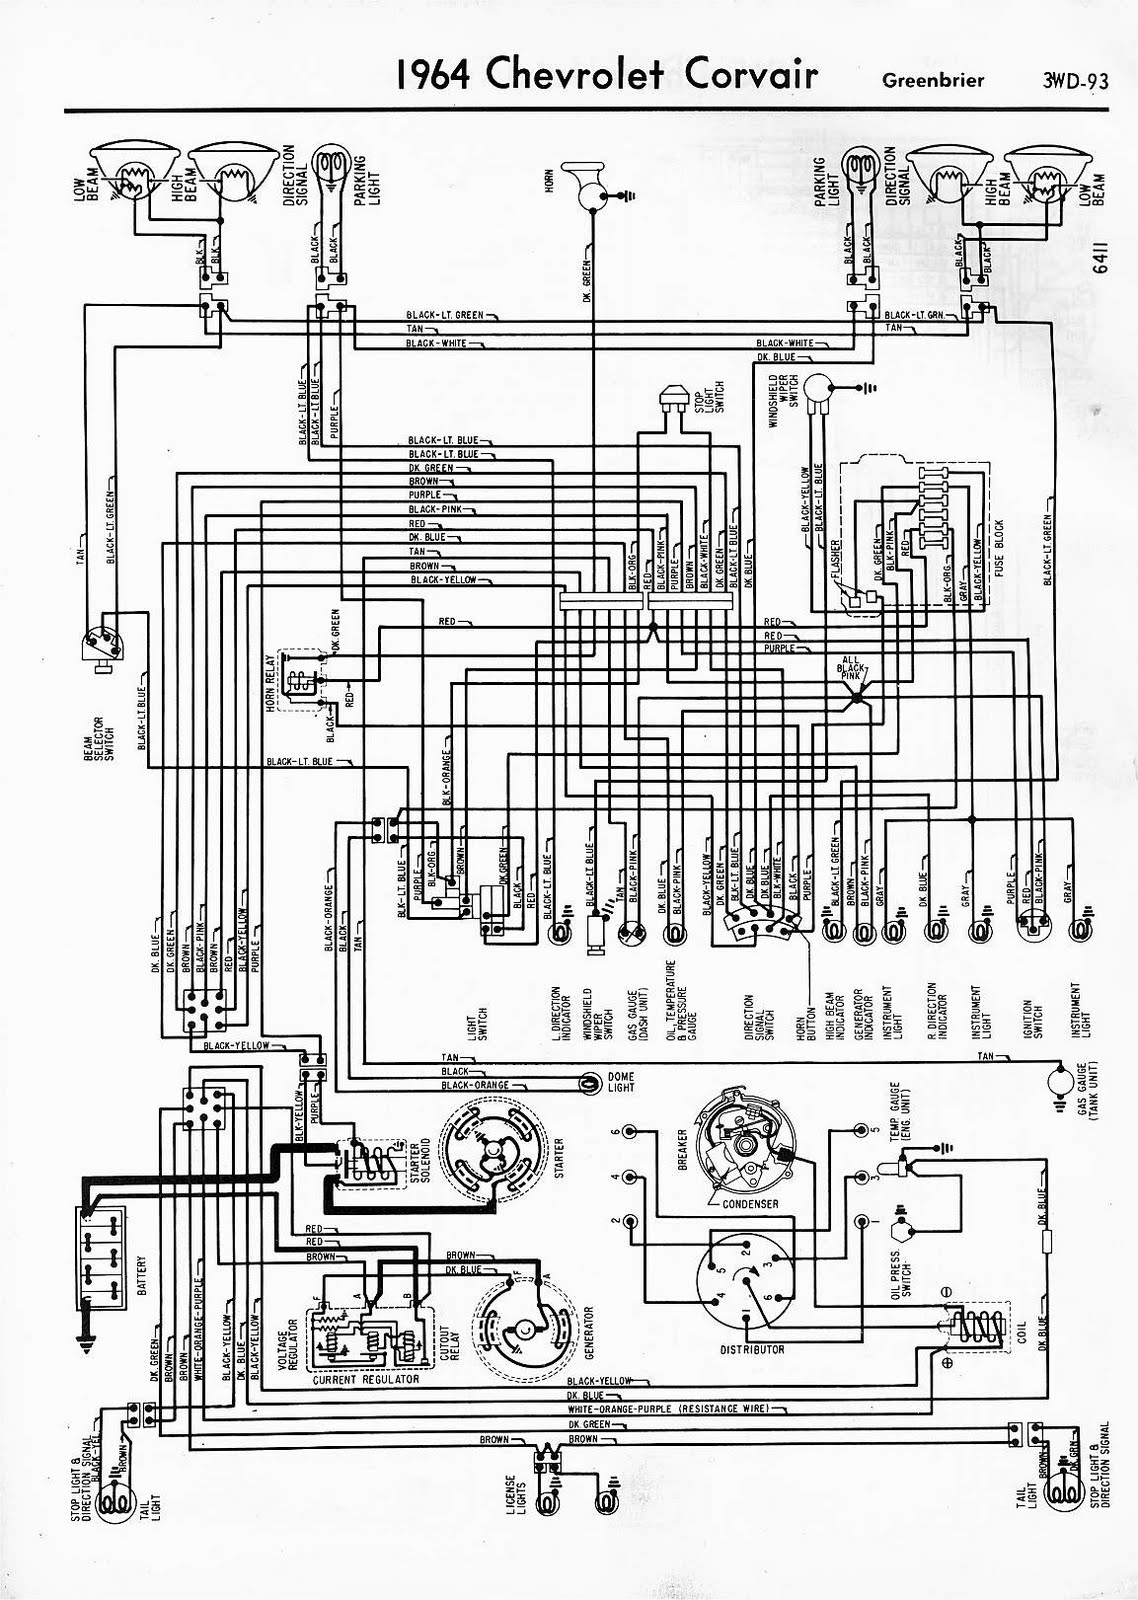 64 Chevy Corvette 327 Wiring Diagram Library 1964 Cadillac Free Auto Chevrolet Corvair